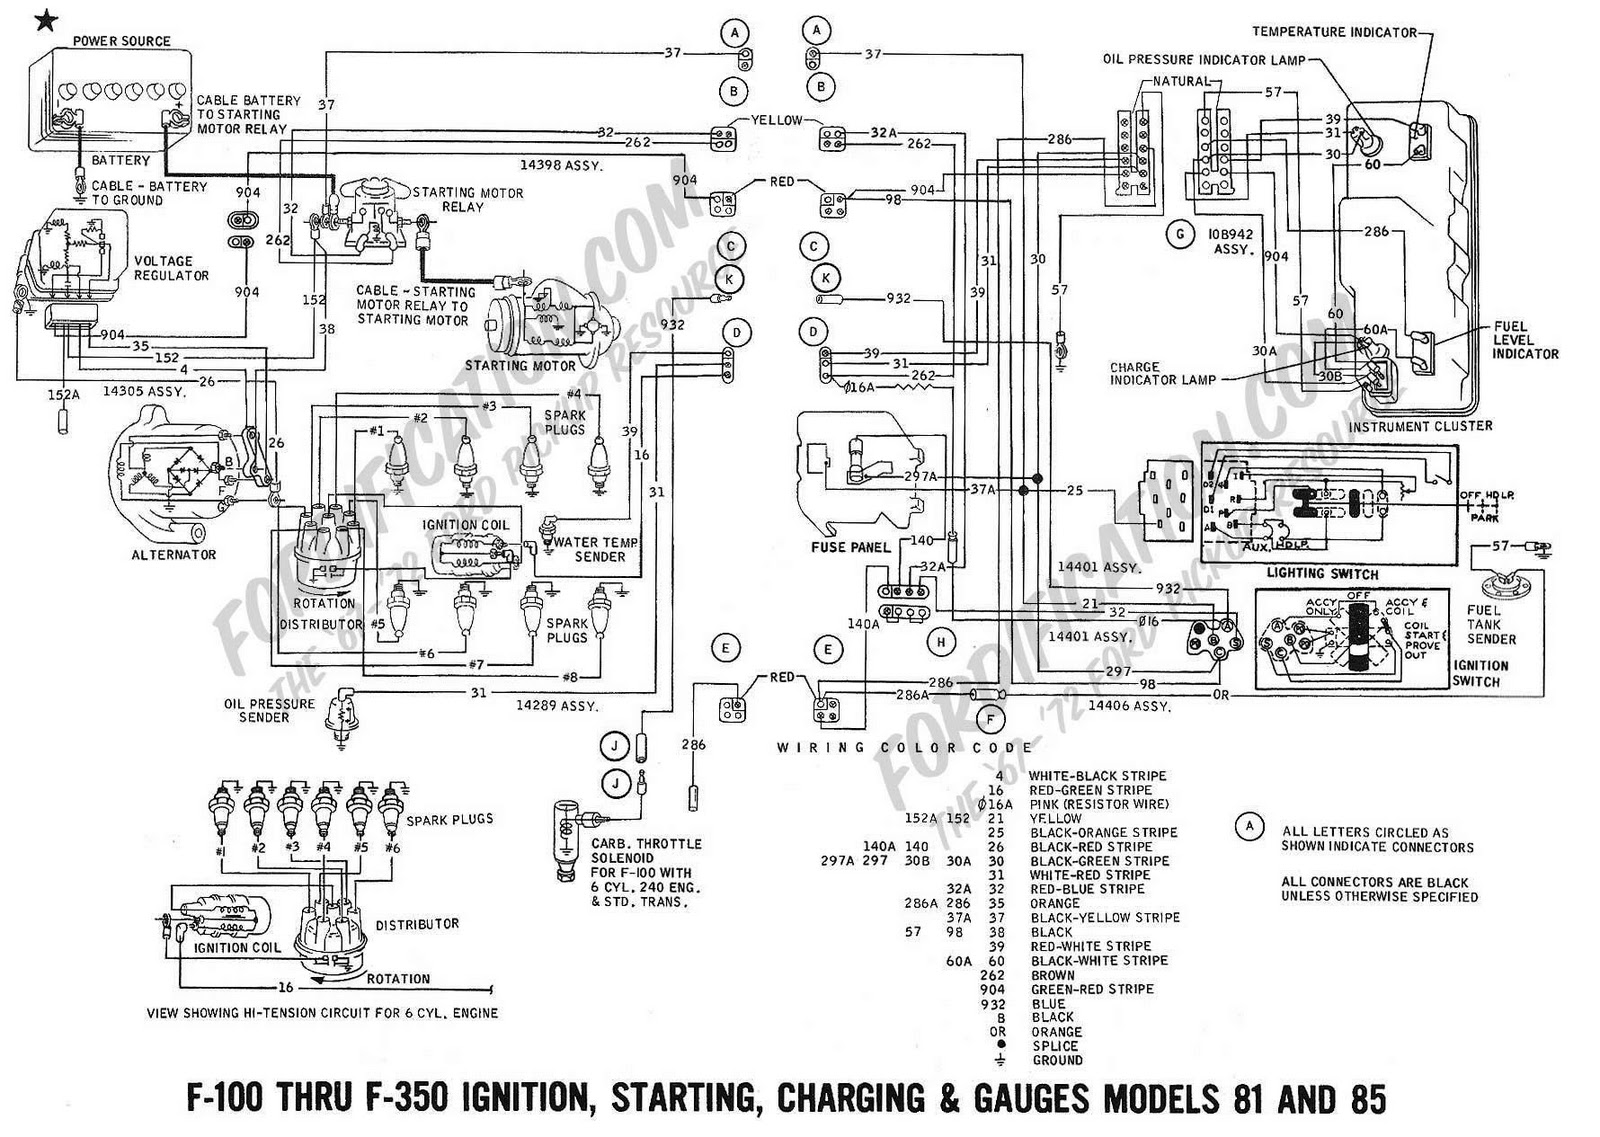 1991 geo metro fuse box diagram with 1969 Ford F100 F350 Ignition Starting on 1969 Ford F100 F350 Ignition Starting moreover 91 Jeep Cherokee Engine Diagram as well 210276458 Mercedes Ml320 Ml350 Ml500 Ml550 2006 2010 Parts together with Buick Reatta Wiring Diagrams besides Wiring Diagram For 1991 Chevy Lumina.